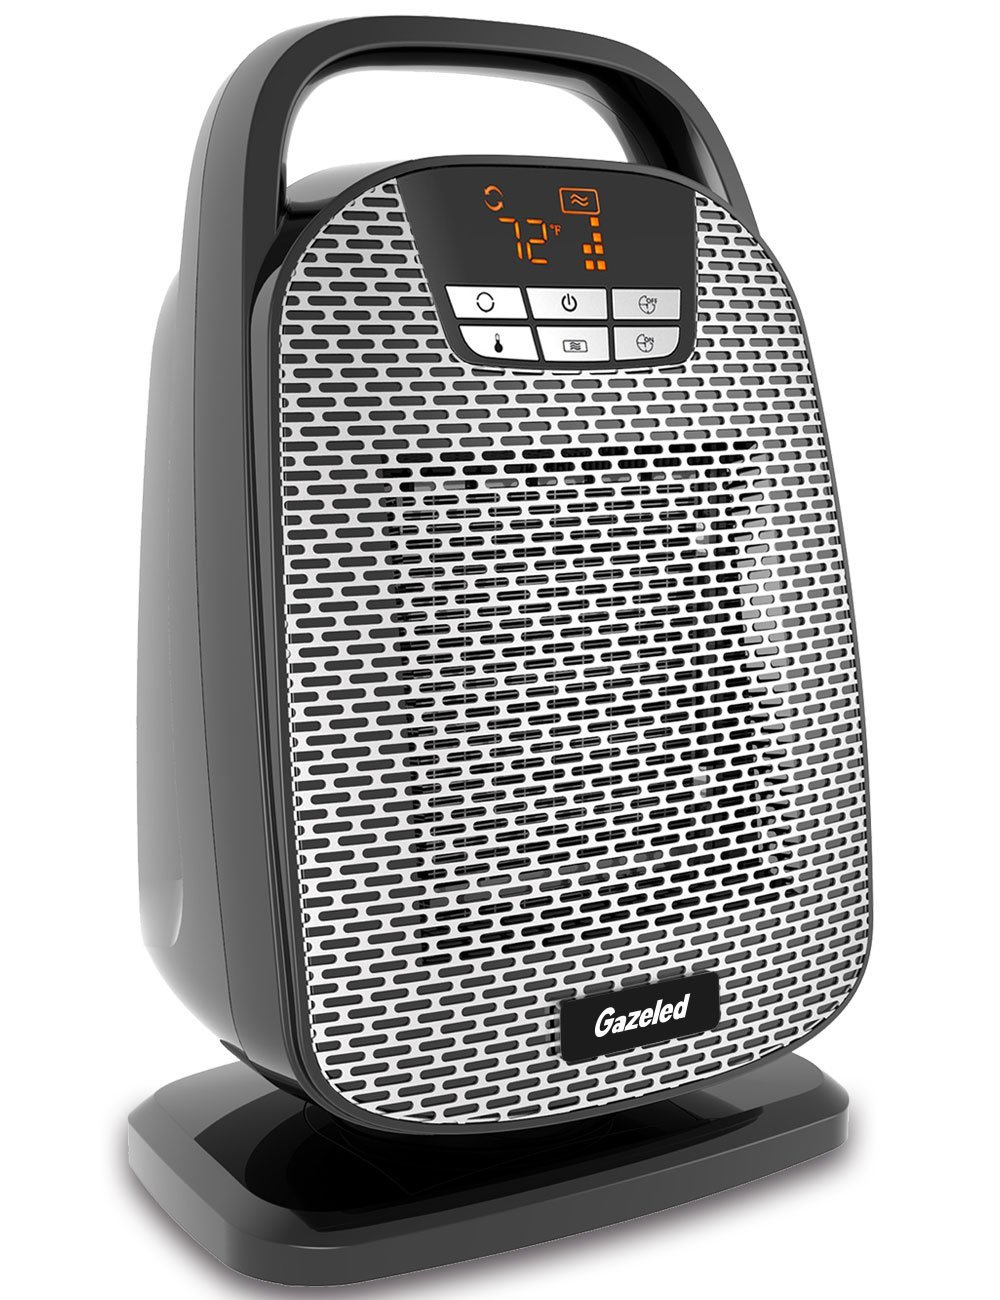 Personal Space Heater, Digital Ceramic Oscillating heater, 1500W/1000W Portable Electric Heater with Adjustable Thermostat & Timer, Tip-Over & Overheating Protection for Small Room, Home, Office